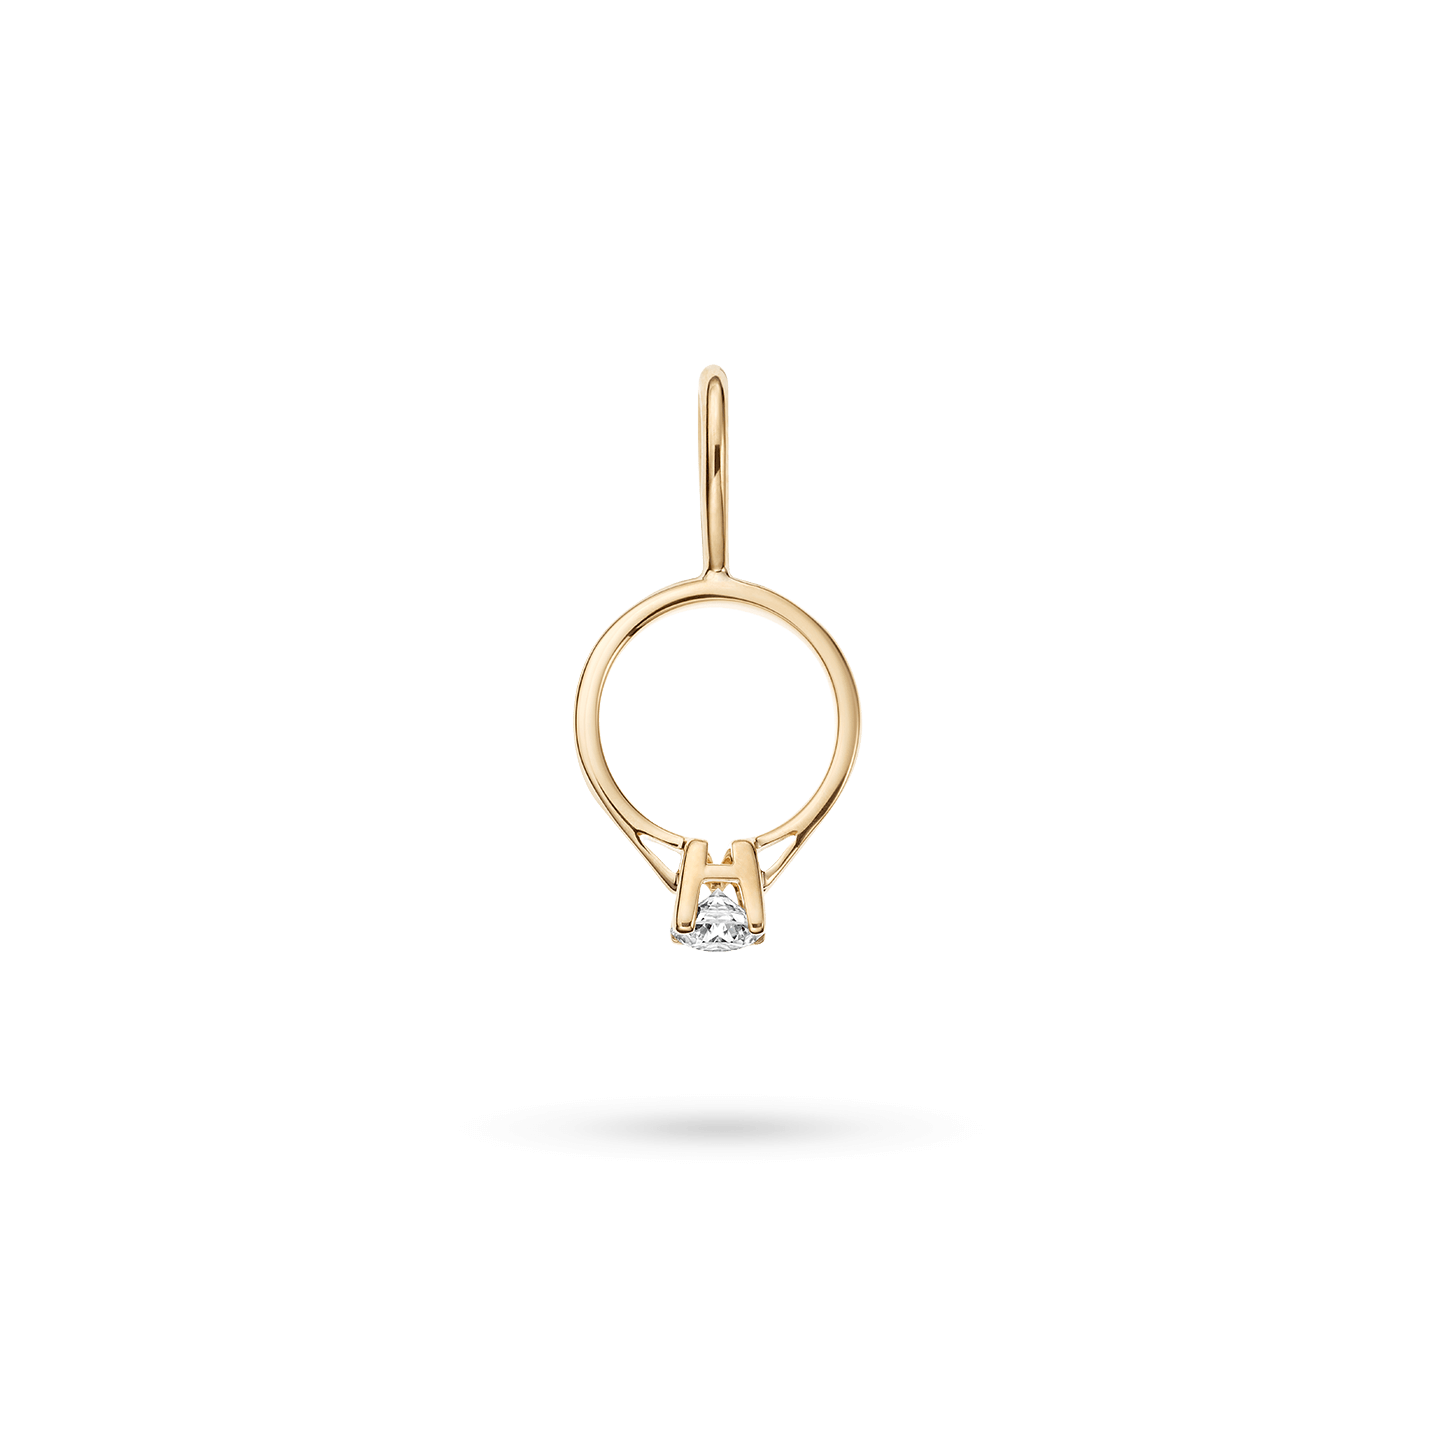 Engagement Ring Charm in Yellow Gold, Product Image 1